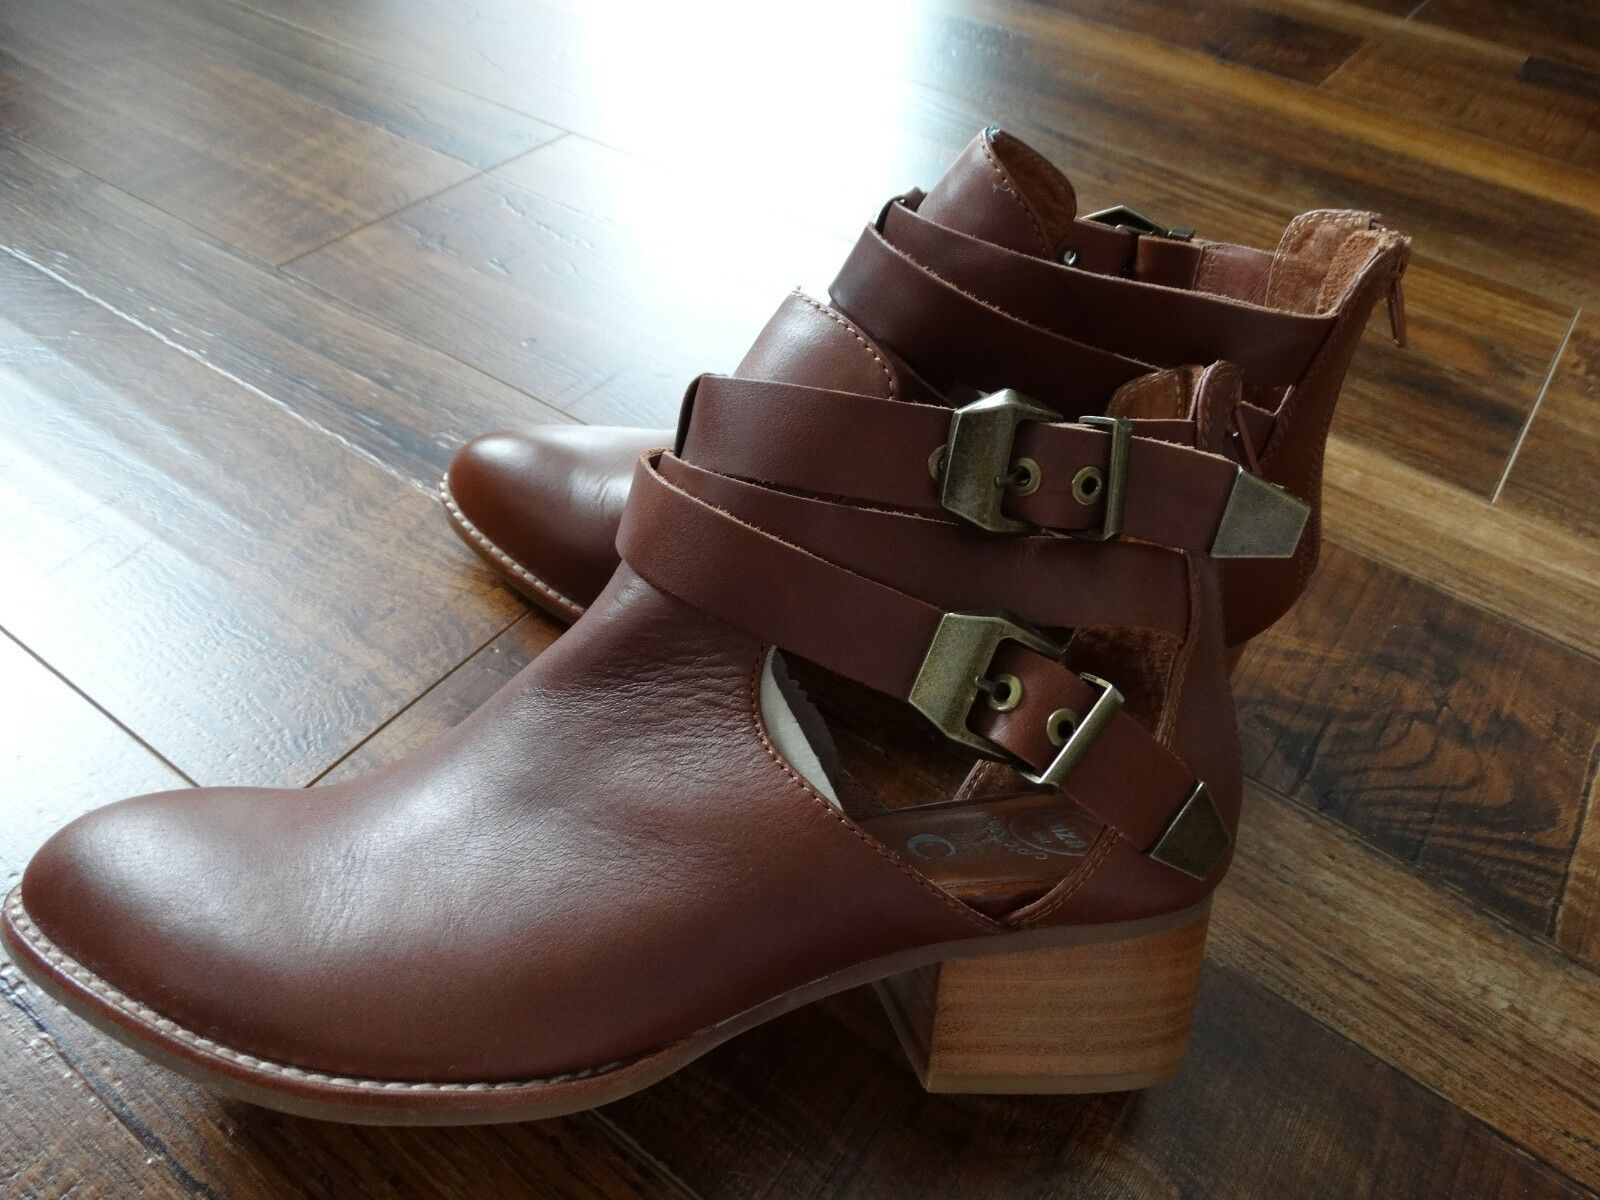 IBIZA Jeffrey Campbell Leather Ankle boots boots boots 9.5 e4a551